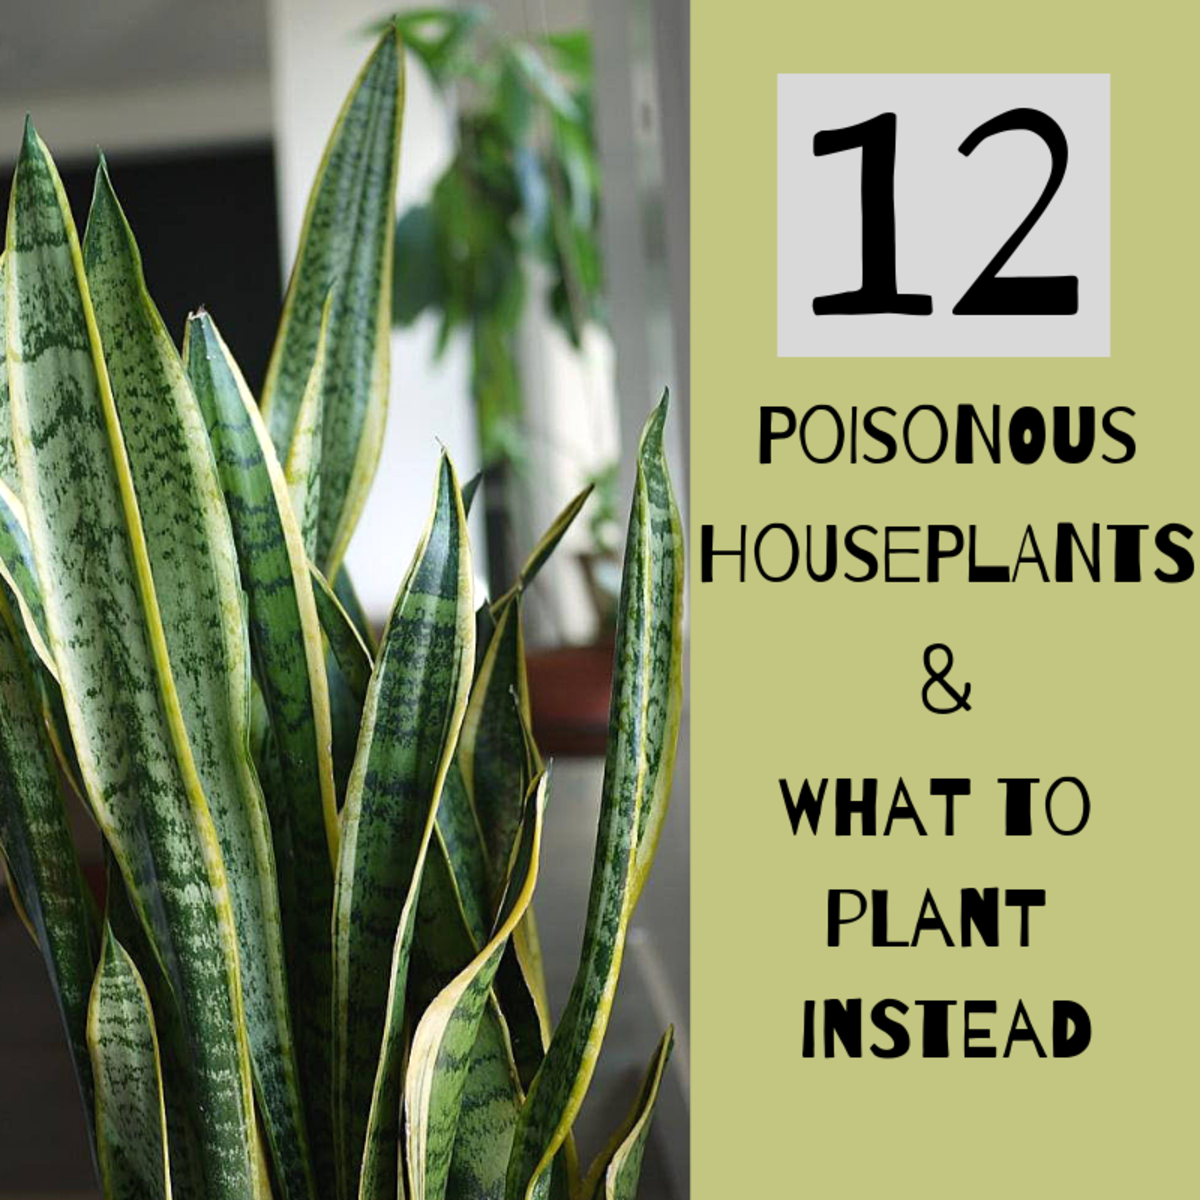 12 Poisonous Houseplants, Their Health Effects, and Safe Alternatives